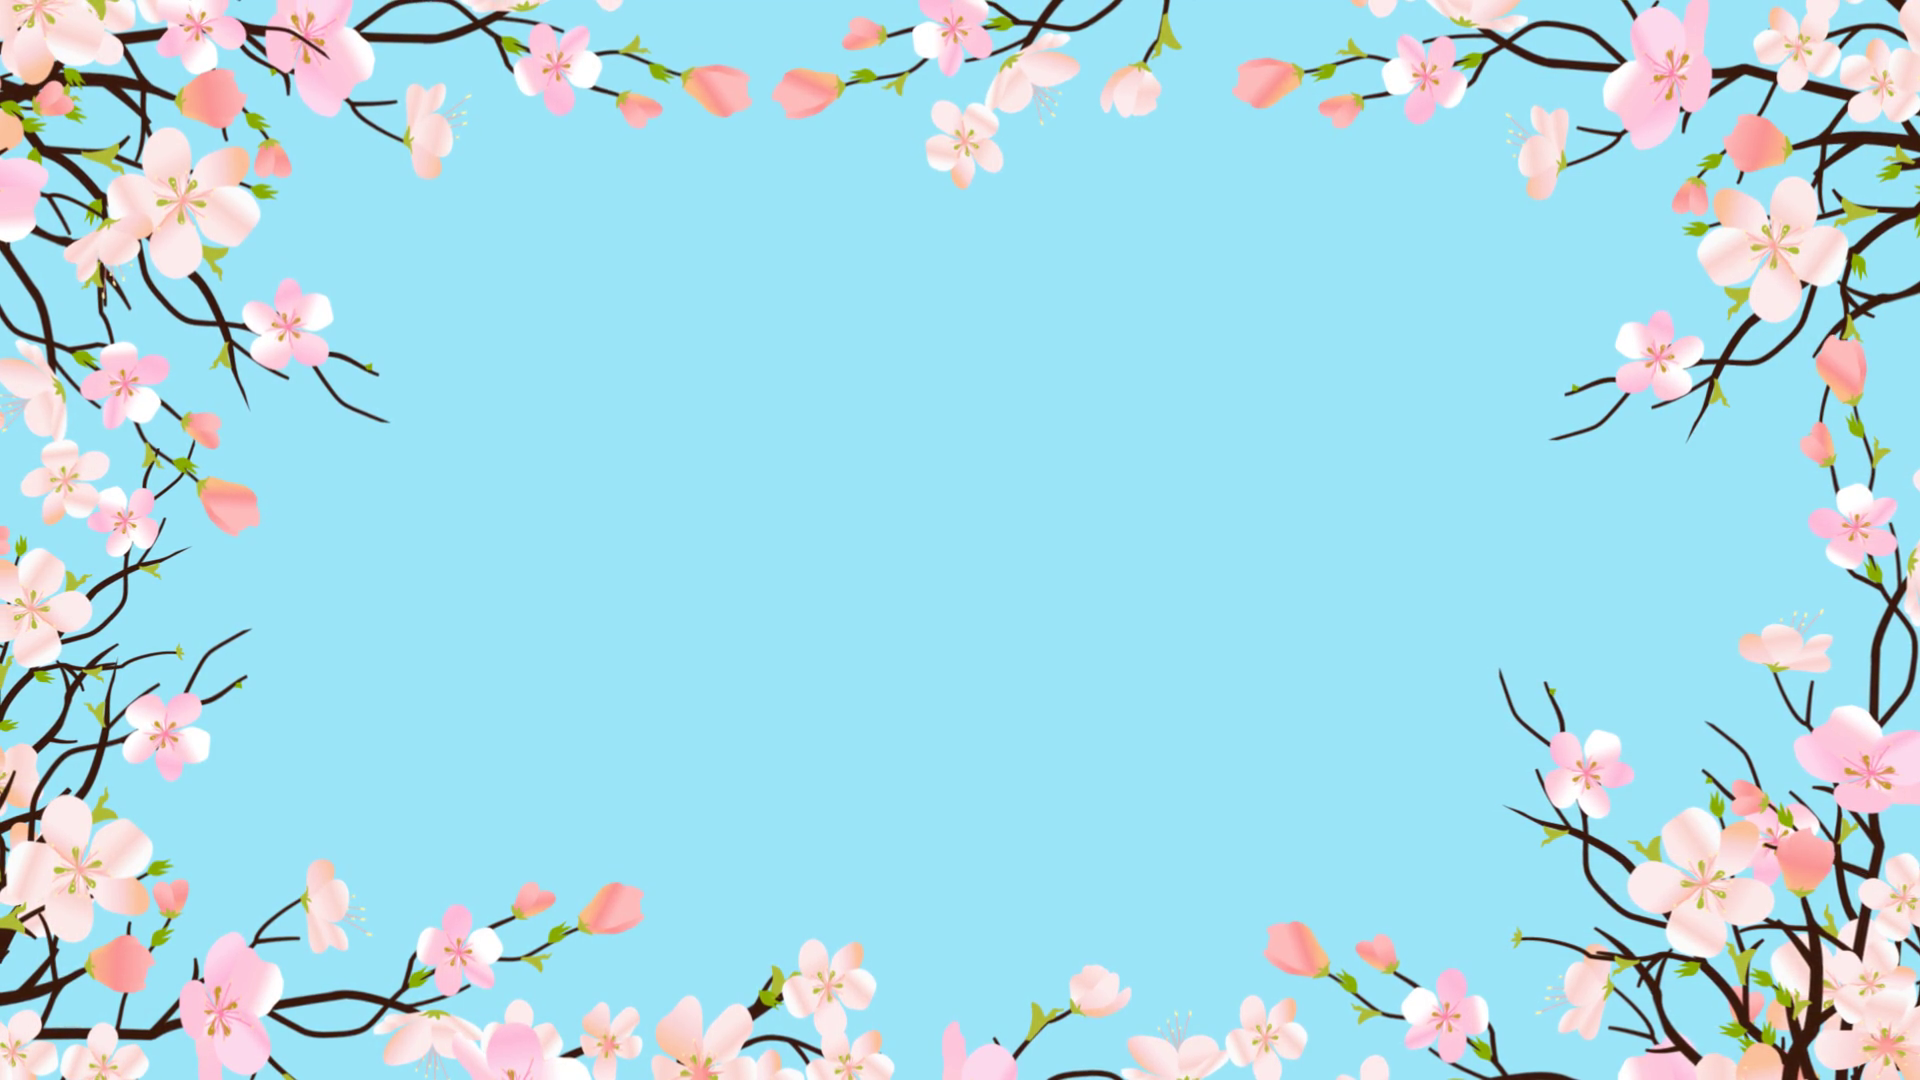 Background clipart cherry blossom. Easter frame from spring